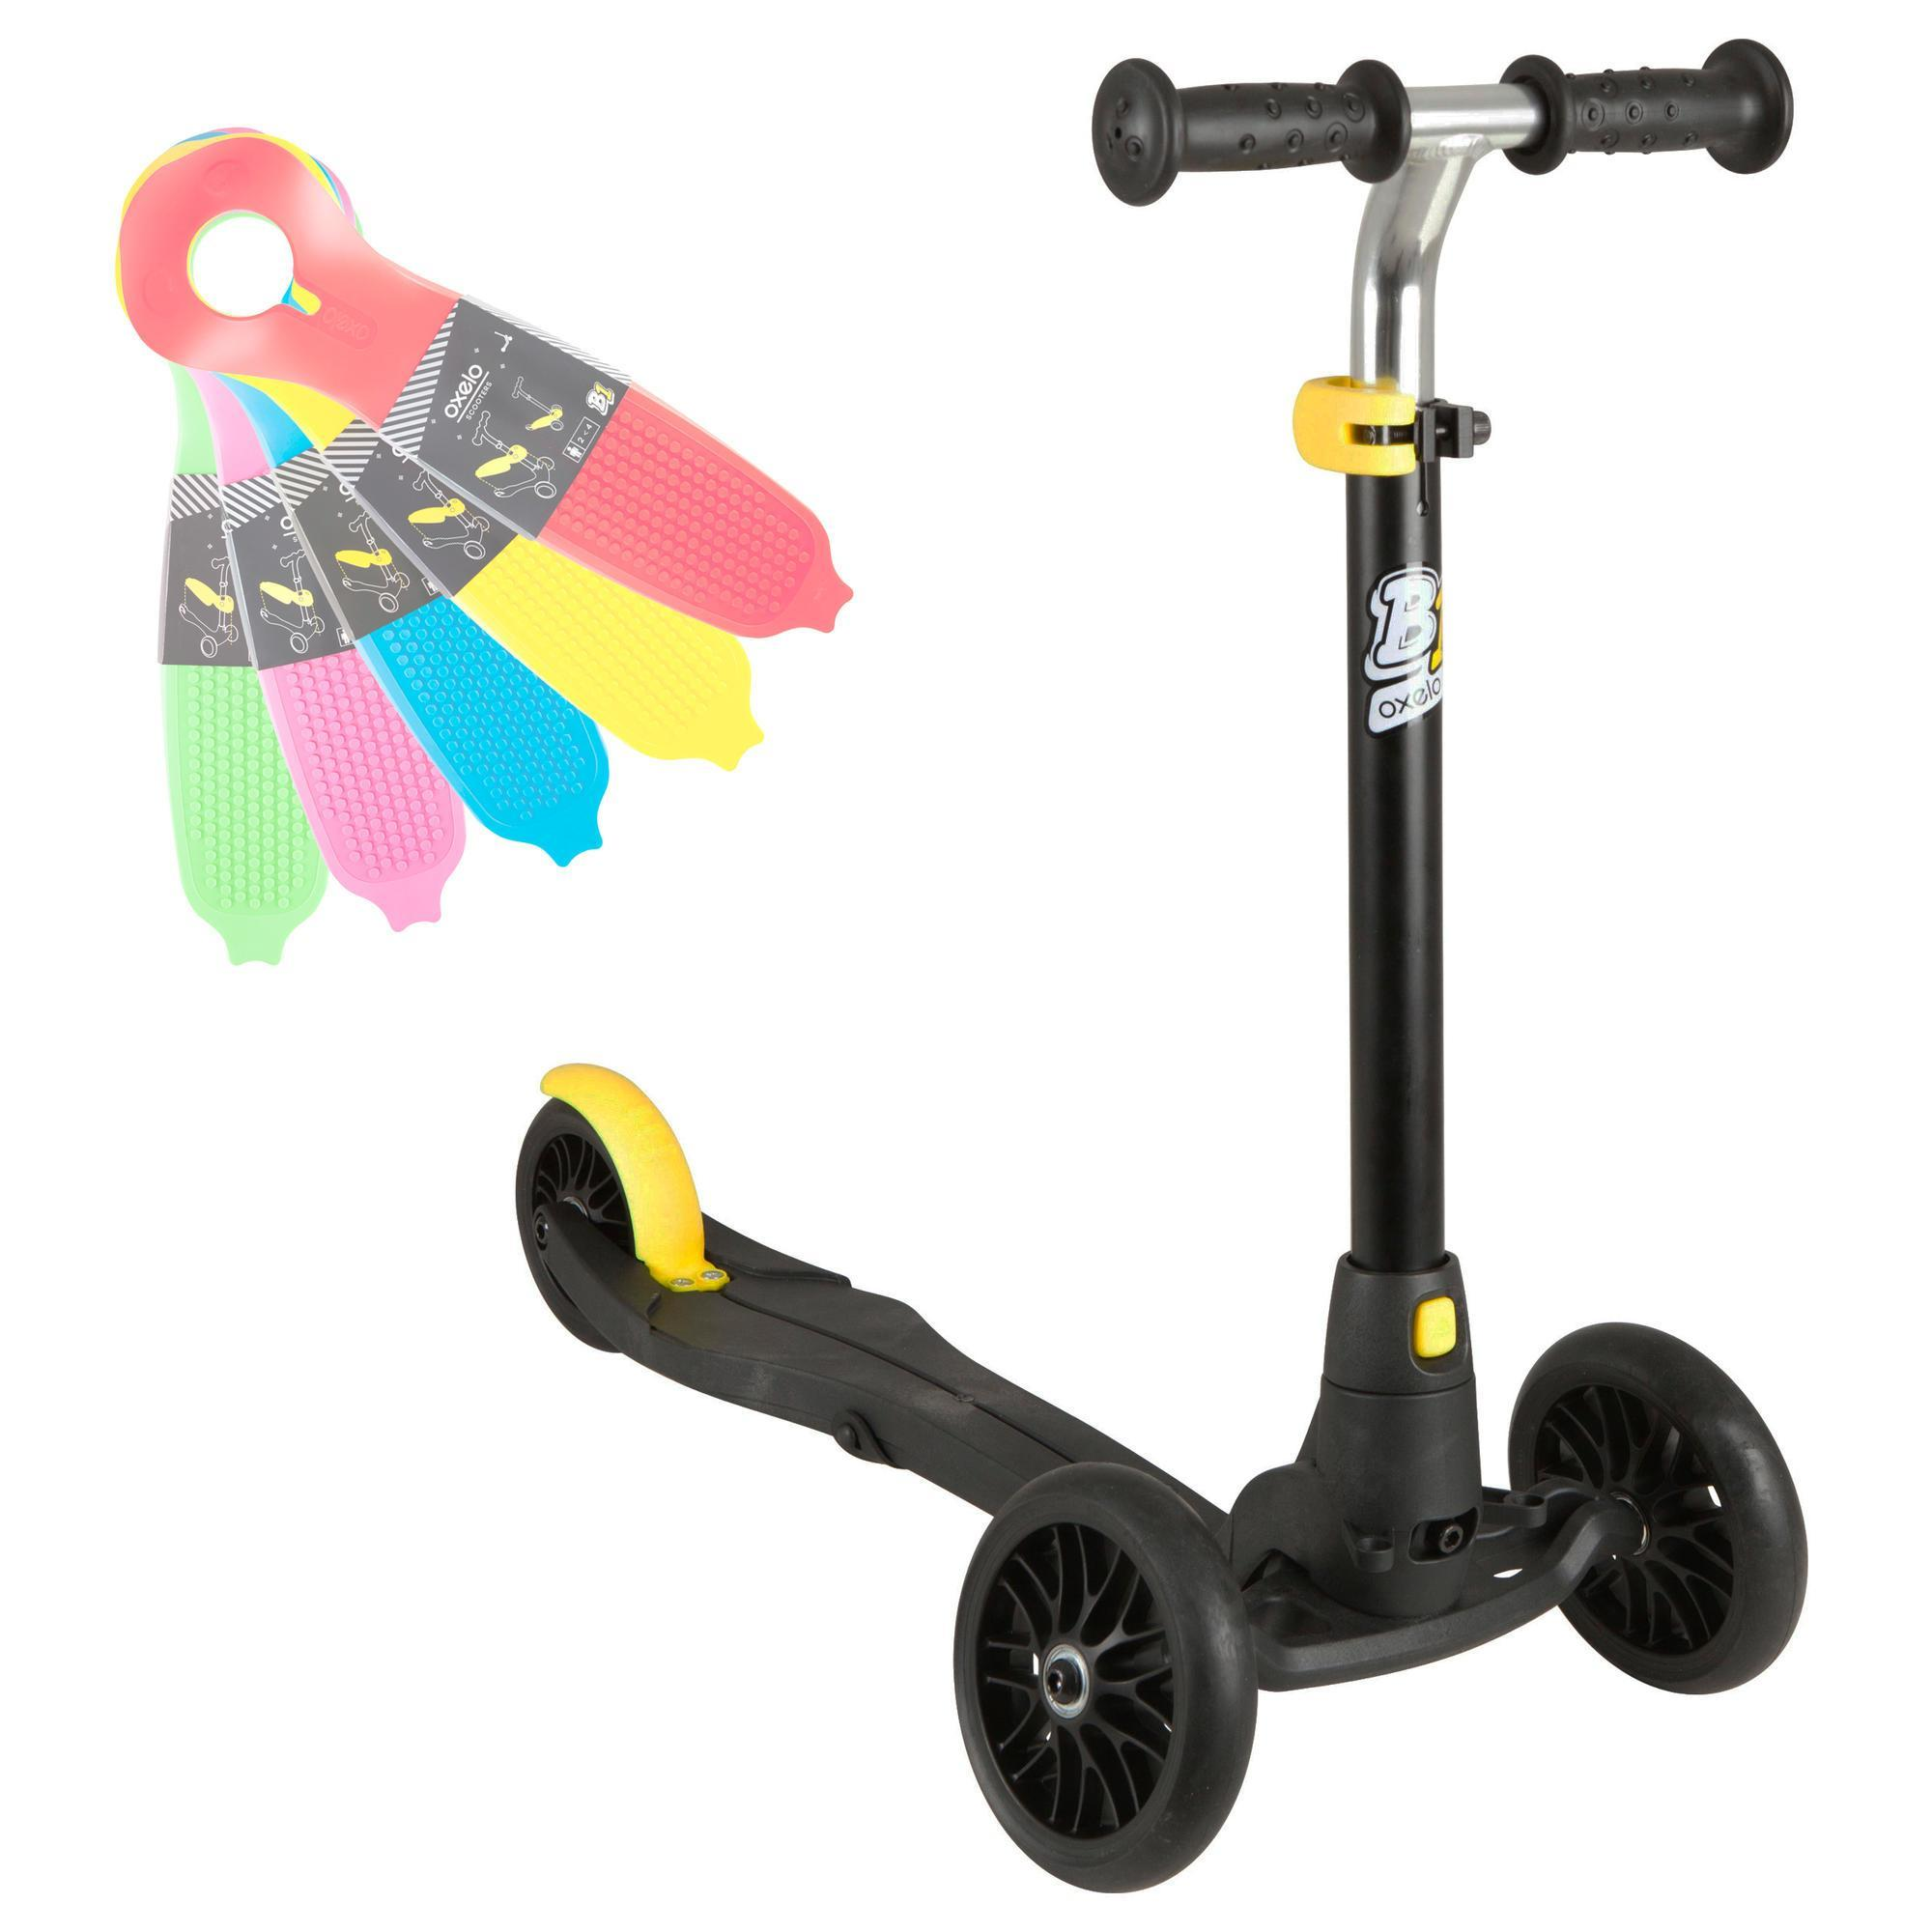 15f4dd9bf Patinete Scooter Oxelo B1 Niños Negro (Sin Base) Oxelo